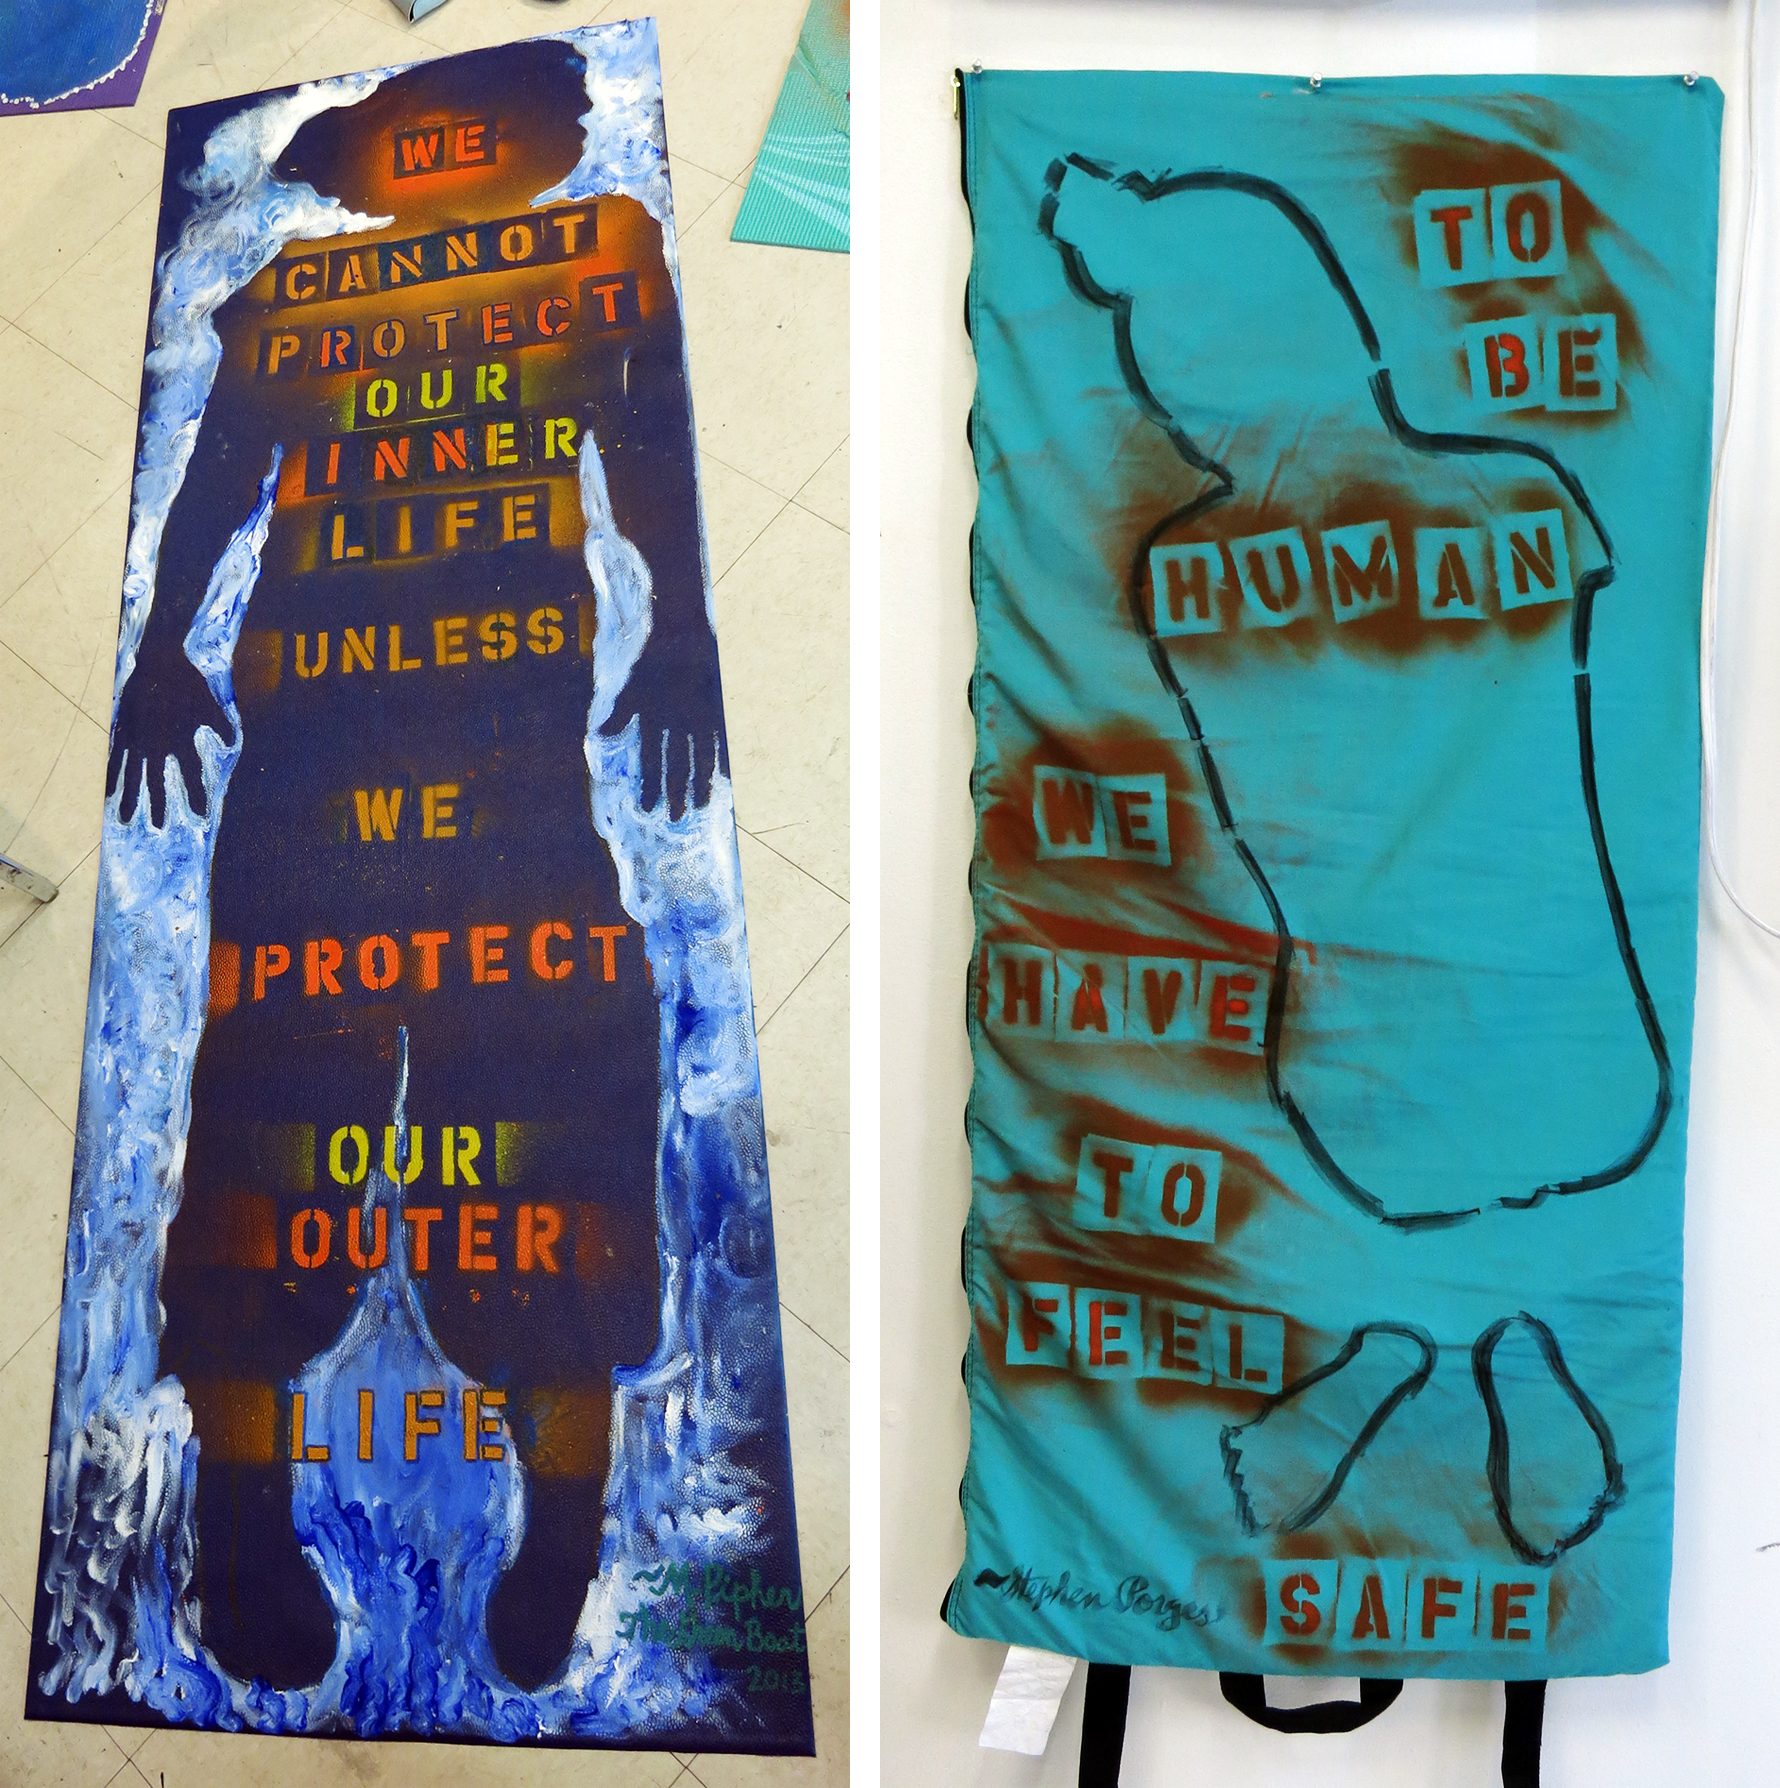 LEFT:  We Cannot Protect Our Inner Life Unless We Protect Out Outer Life. RIGHT: To Be Human We Have To Feel Safe